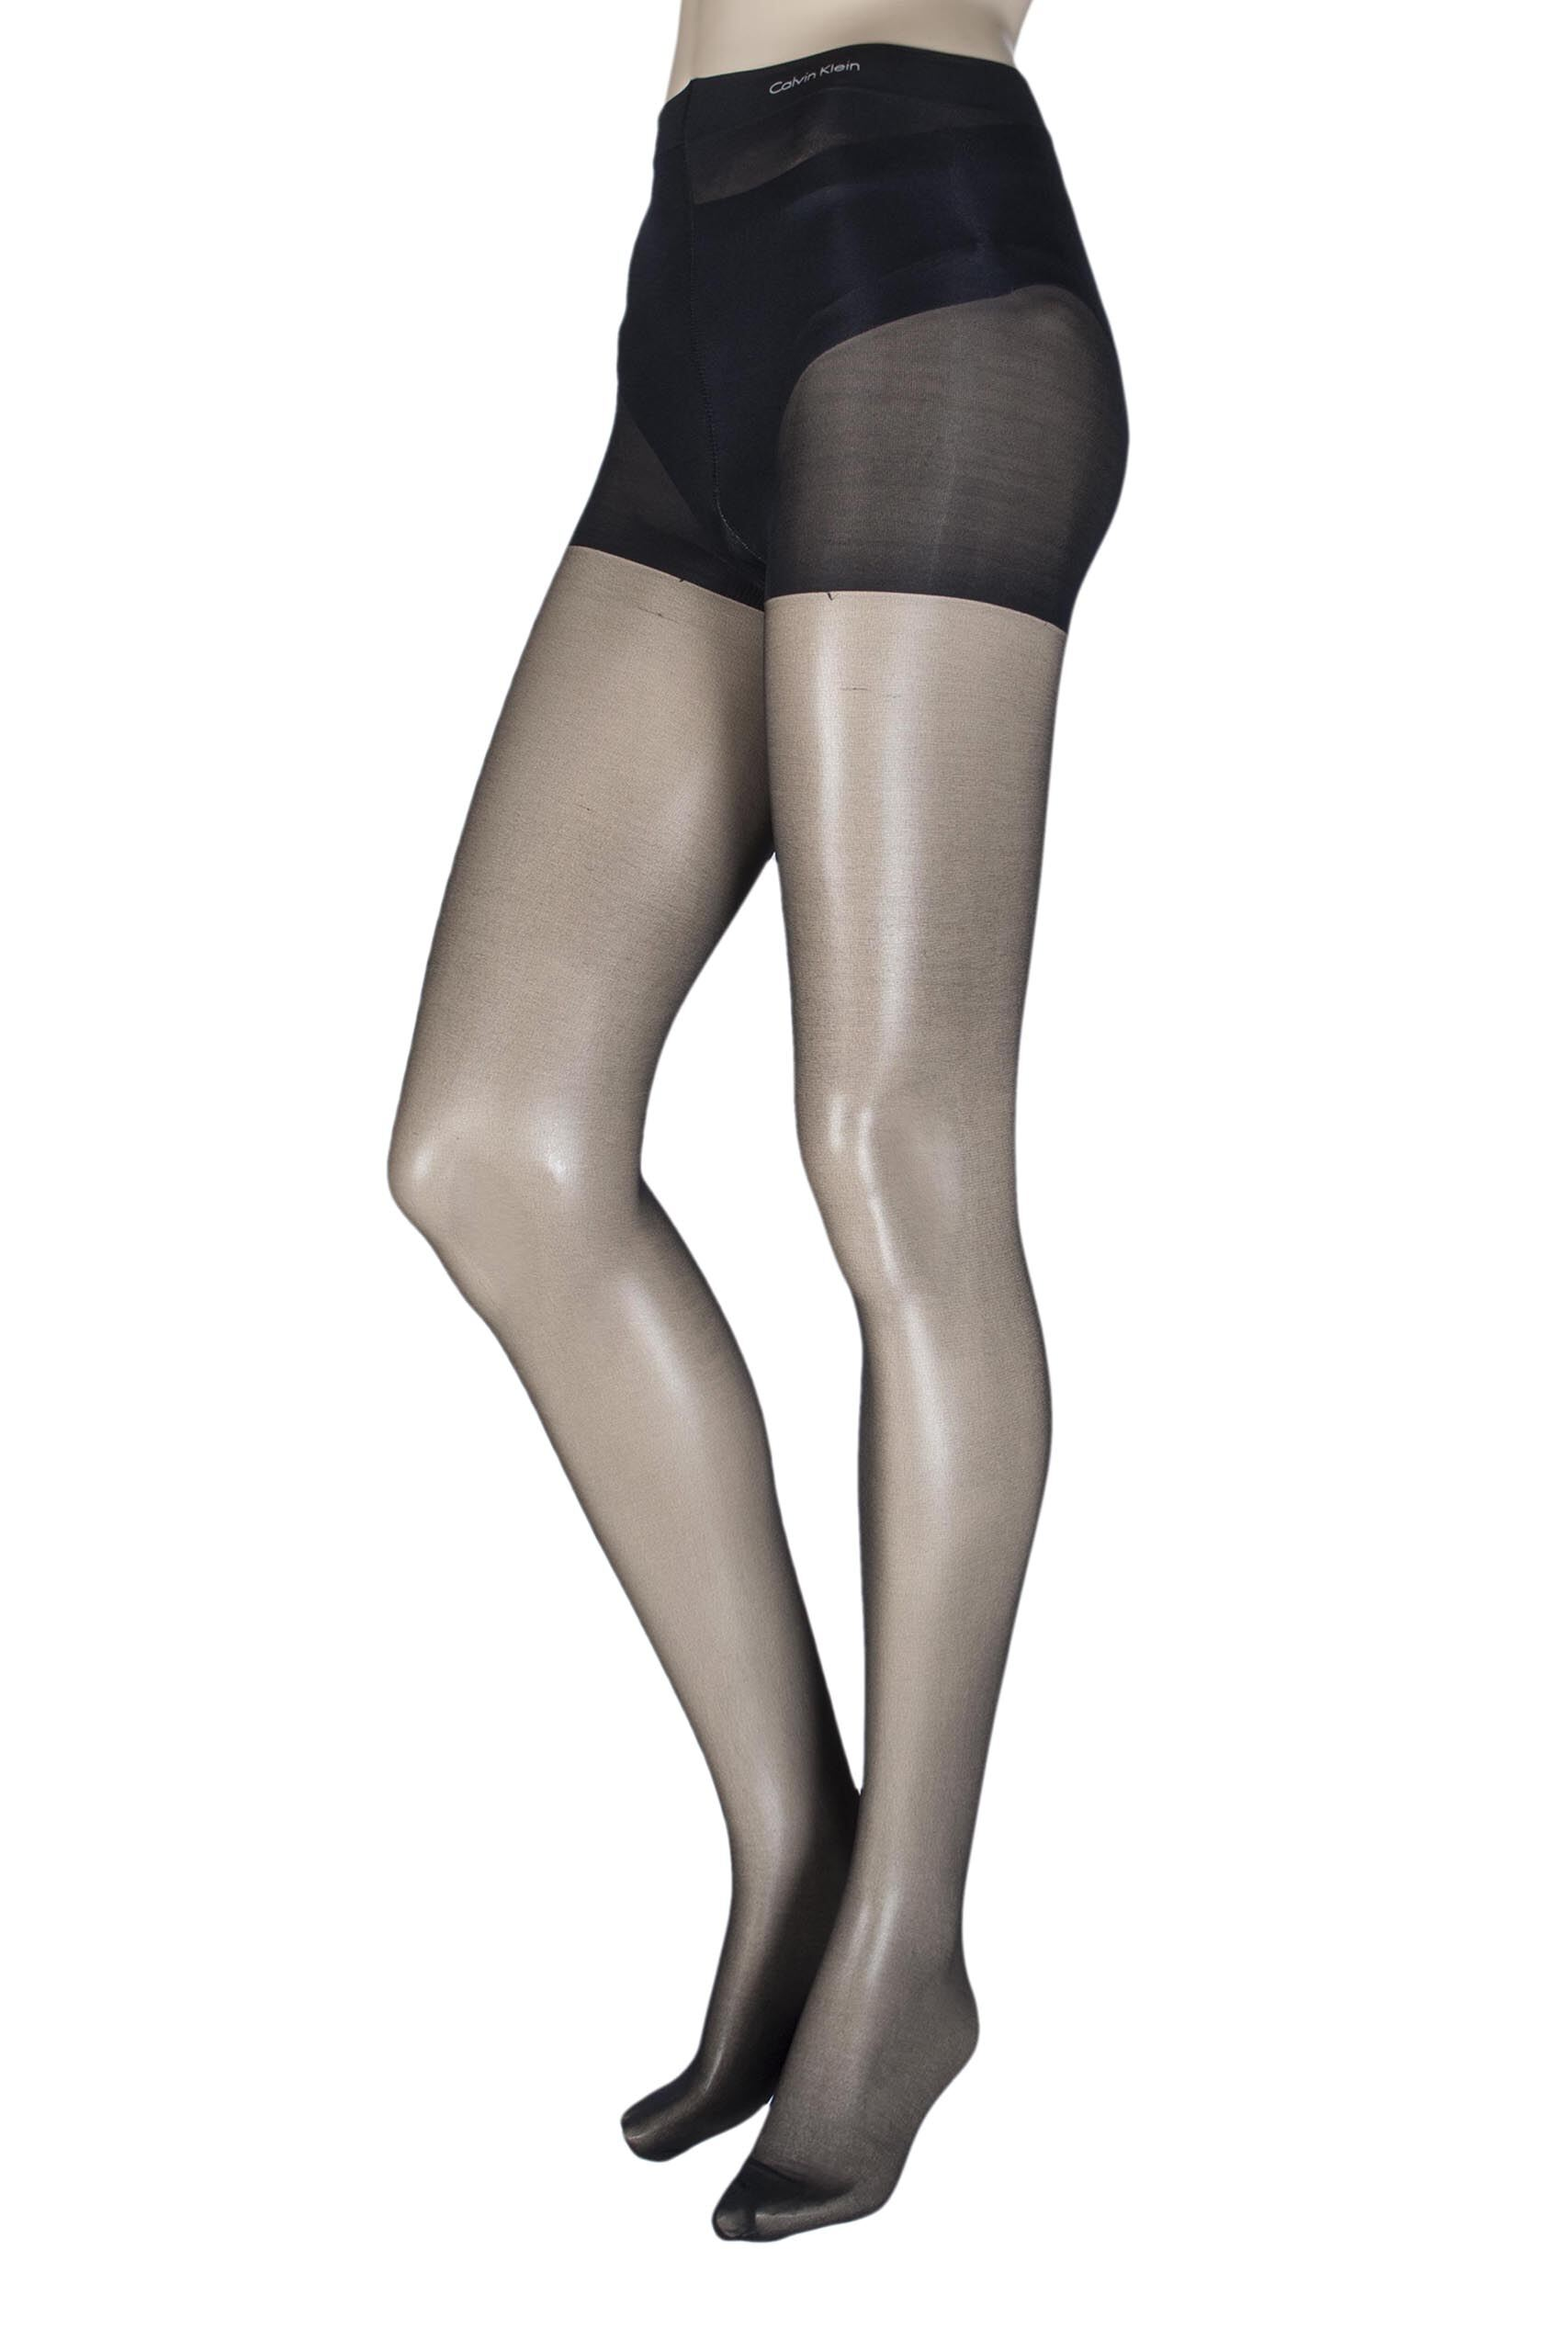 Image of 1 Pair Black Ultra Bare Infinate Sheer Tights with Control Top Ladies Small - Calvin Klein